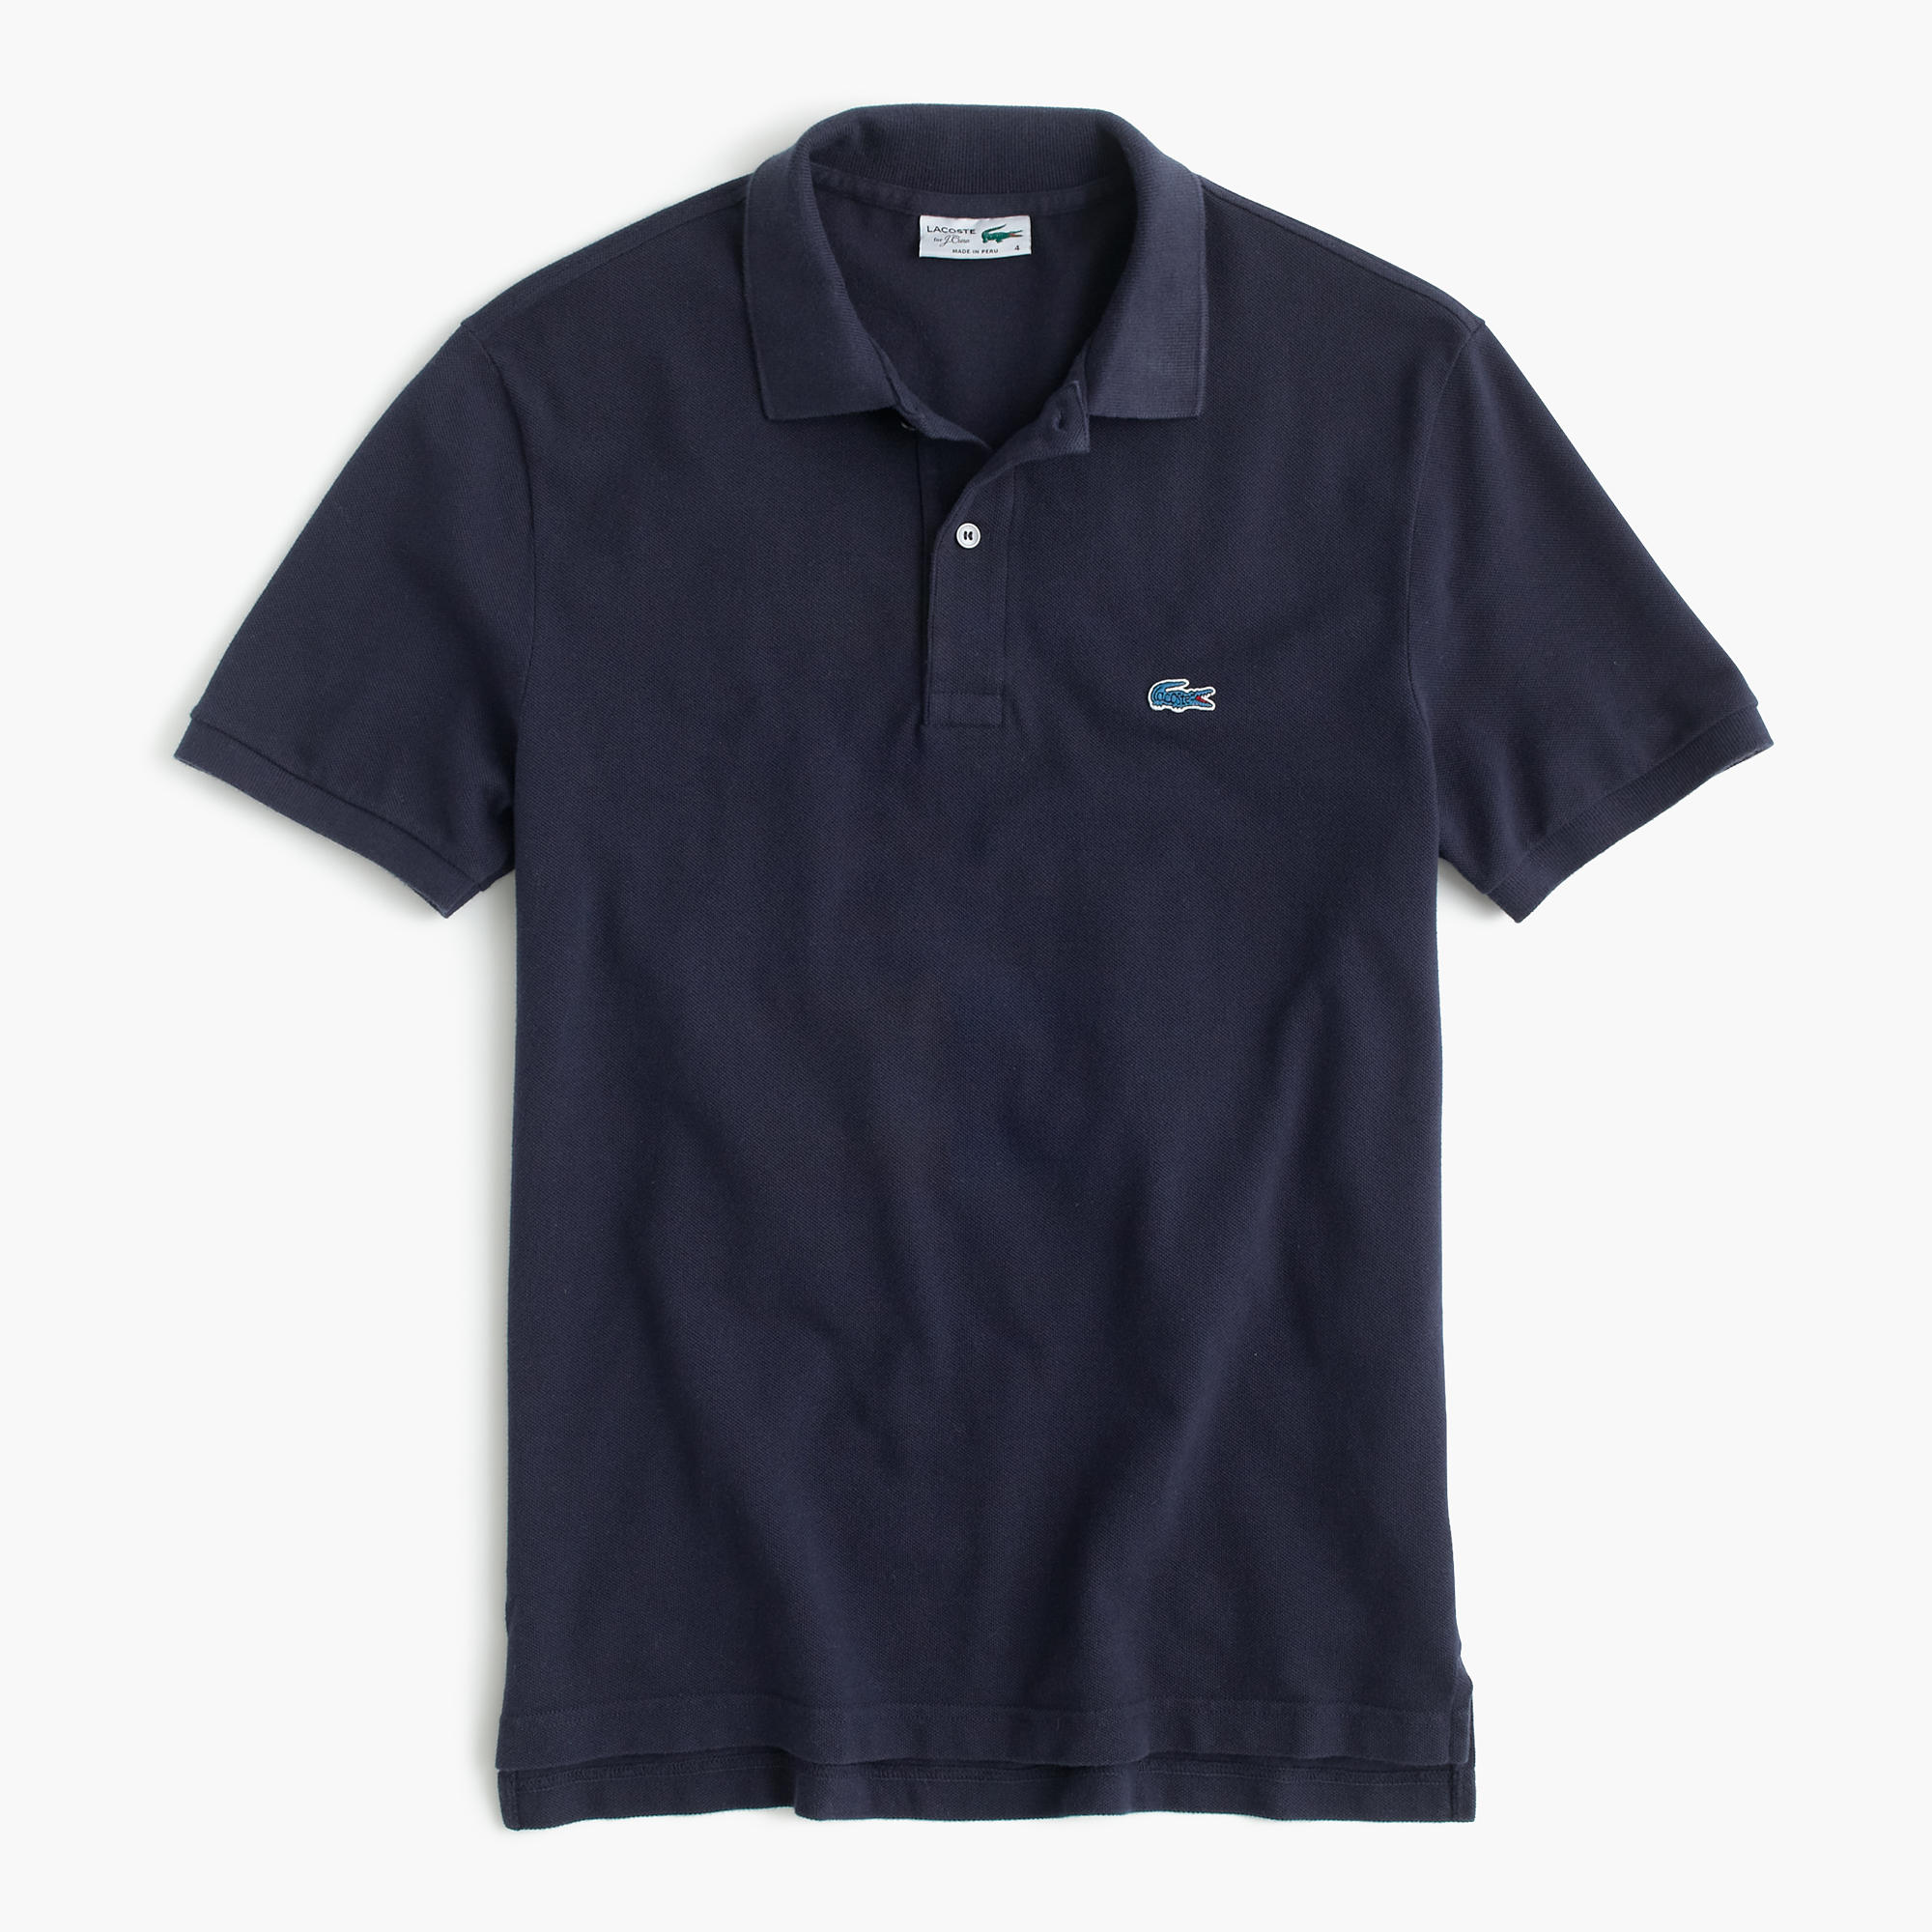 Much does lacoste polo weigh - Lacoste poloshirt weiay ...